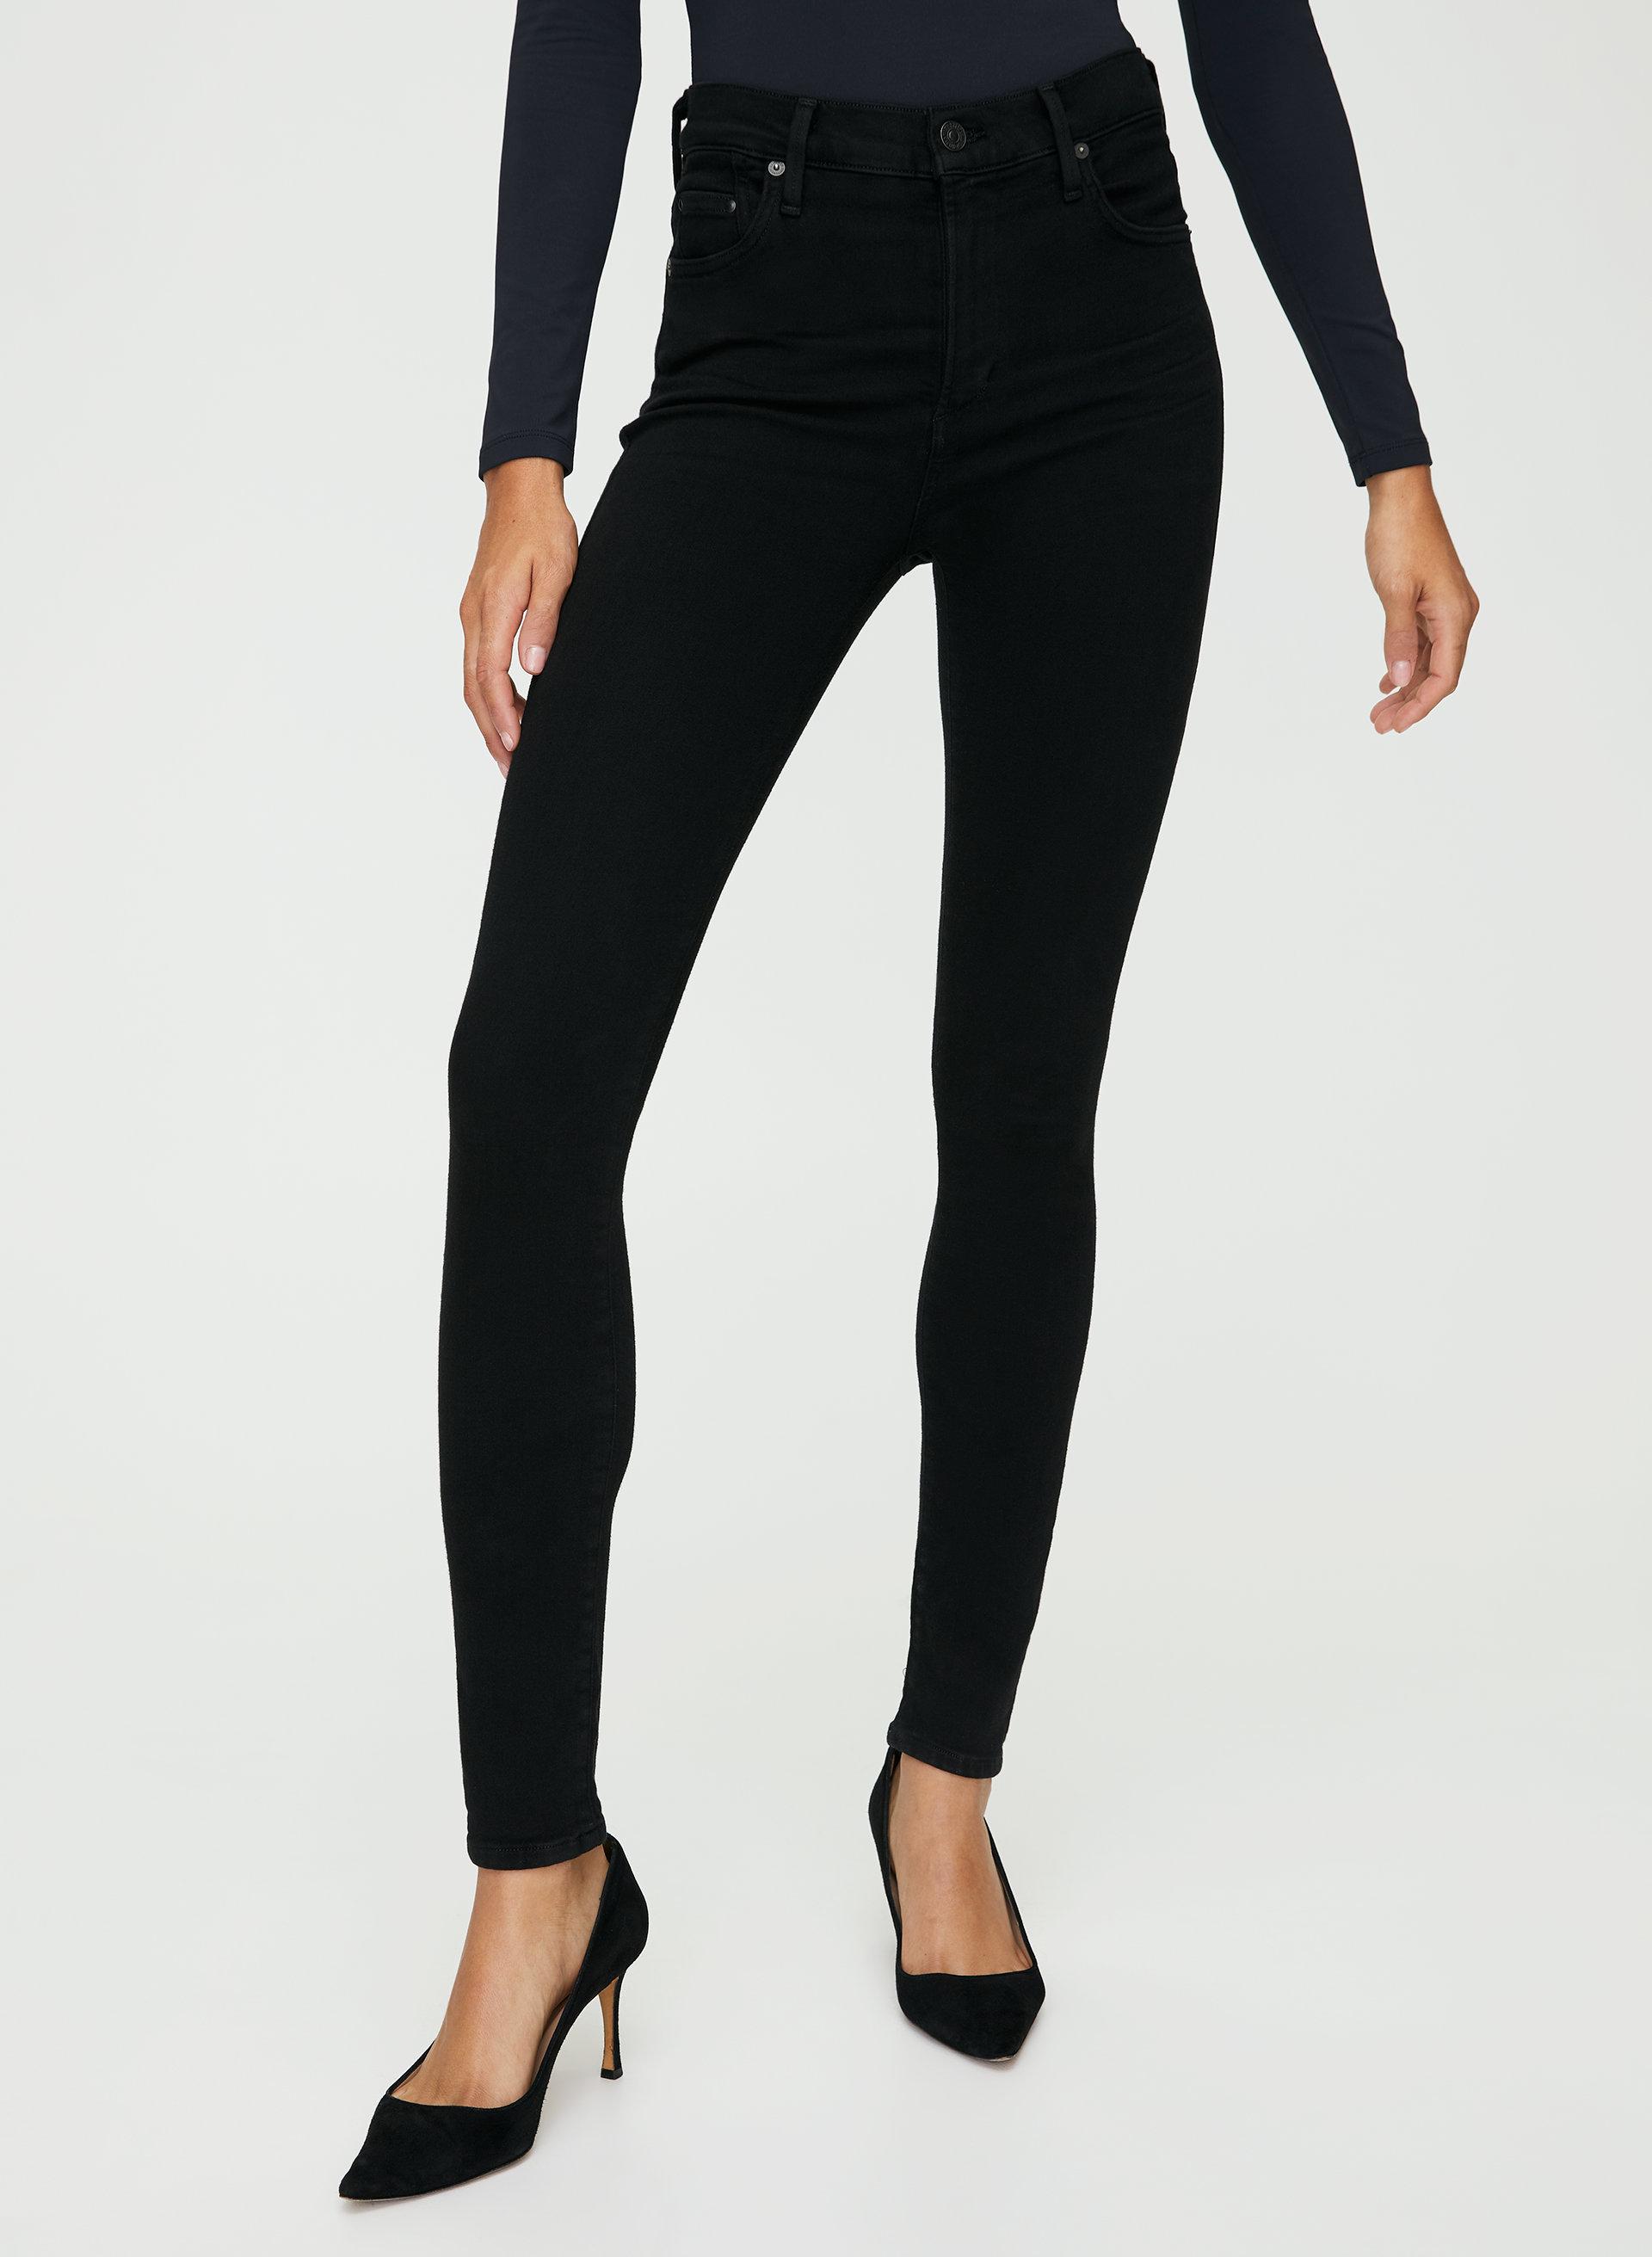 24 Citizens of Humanity Rocket High Rise Skinny Black Velour Ankle Crop Jeans